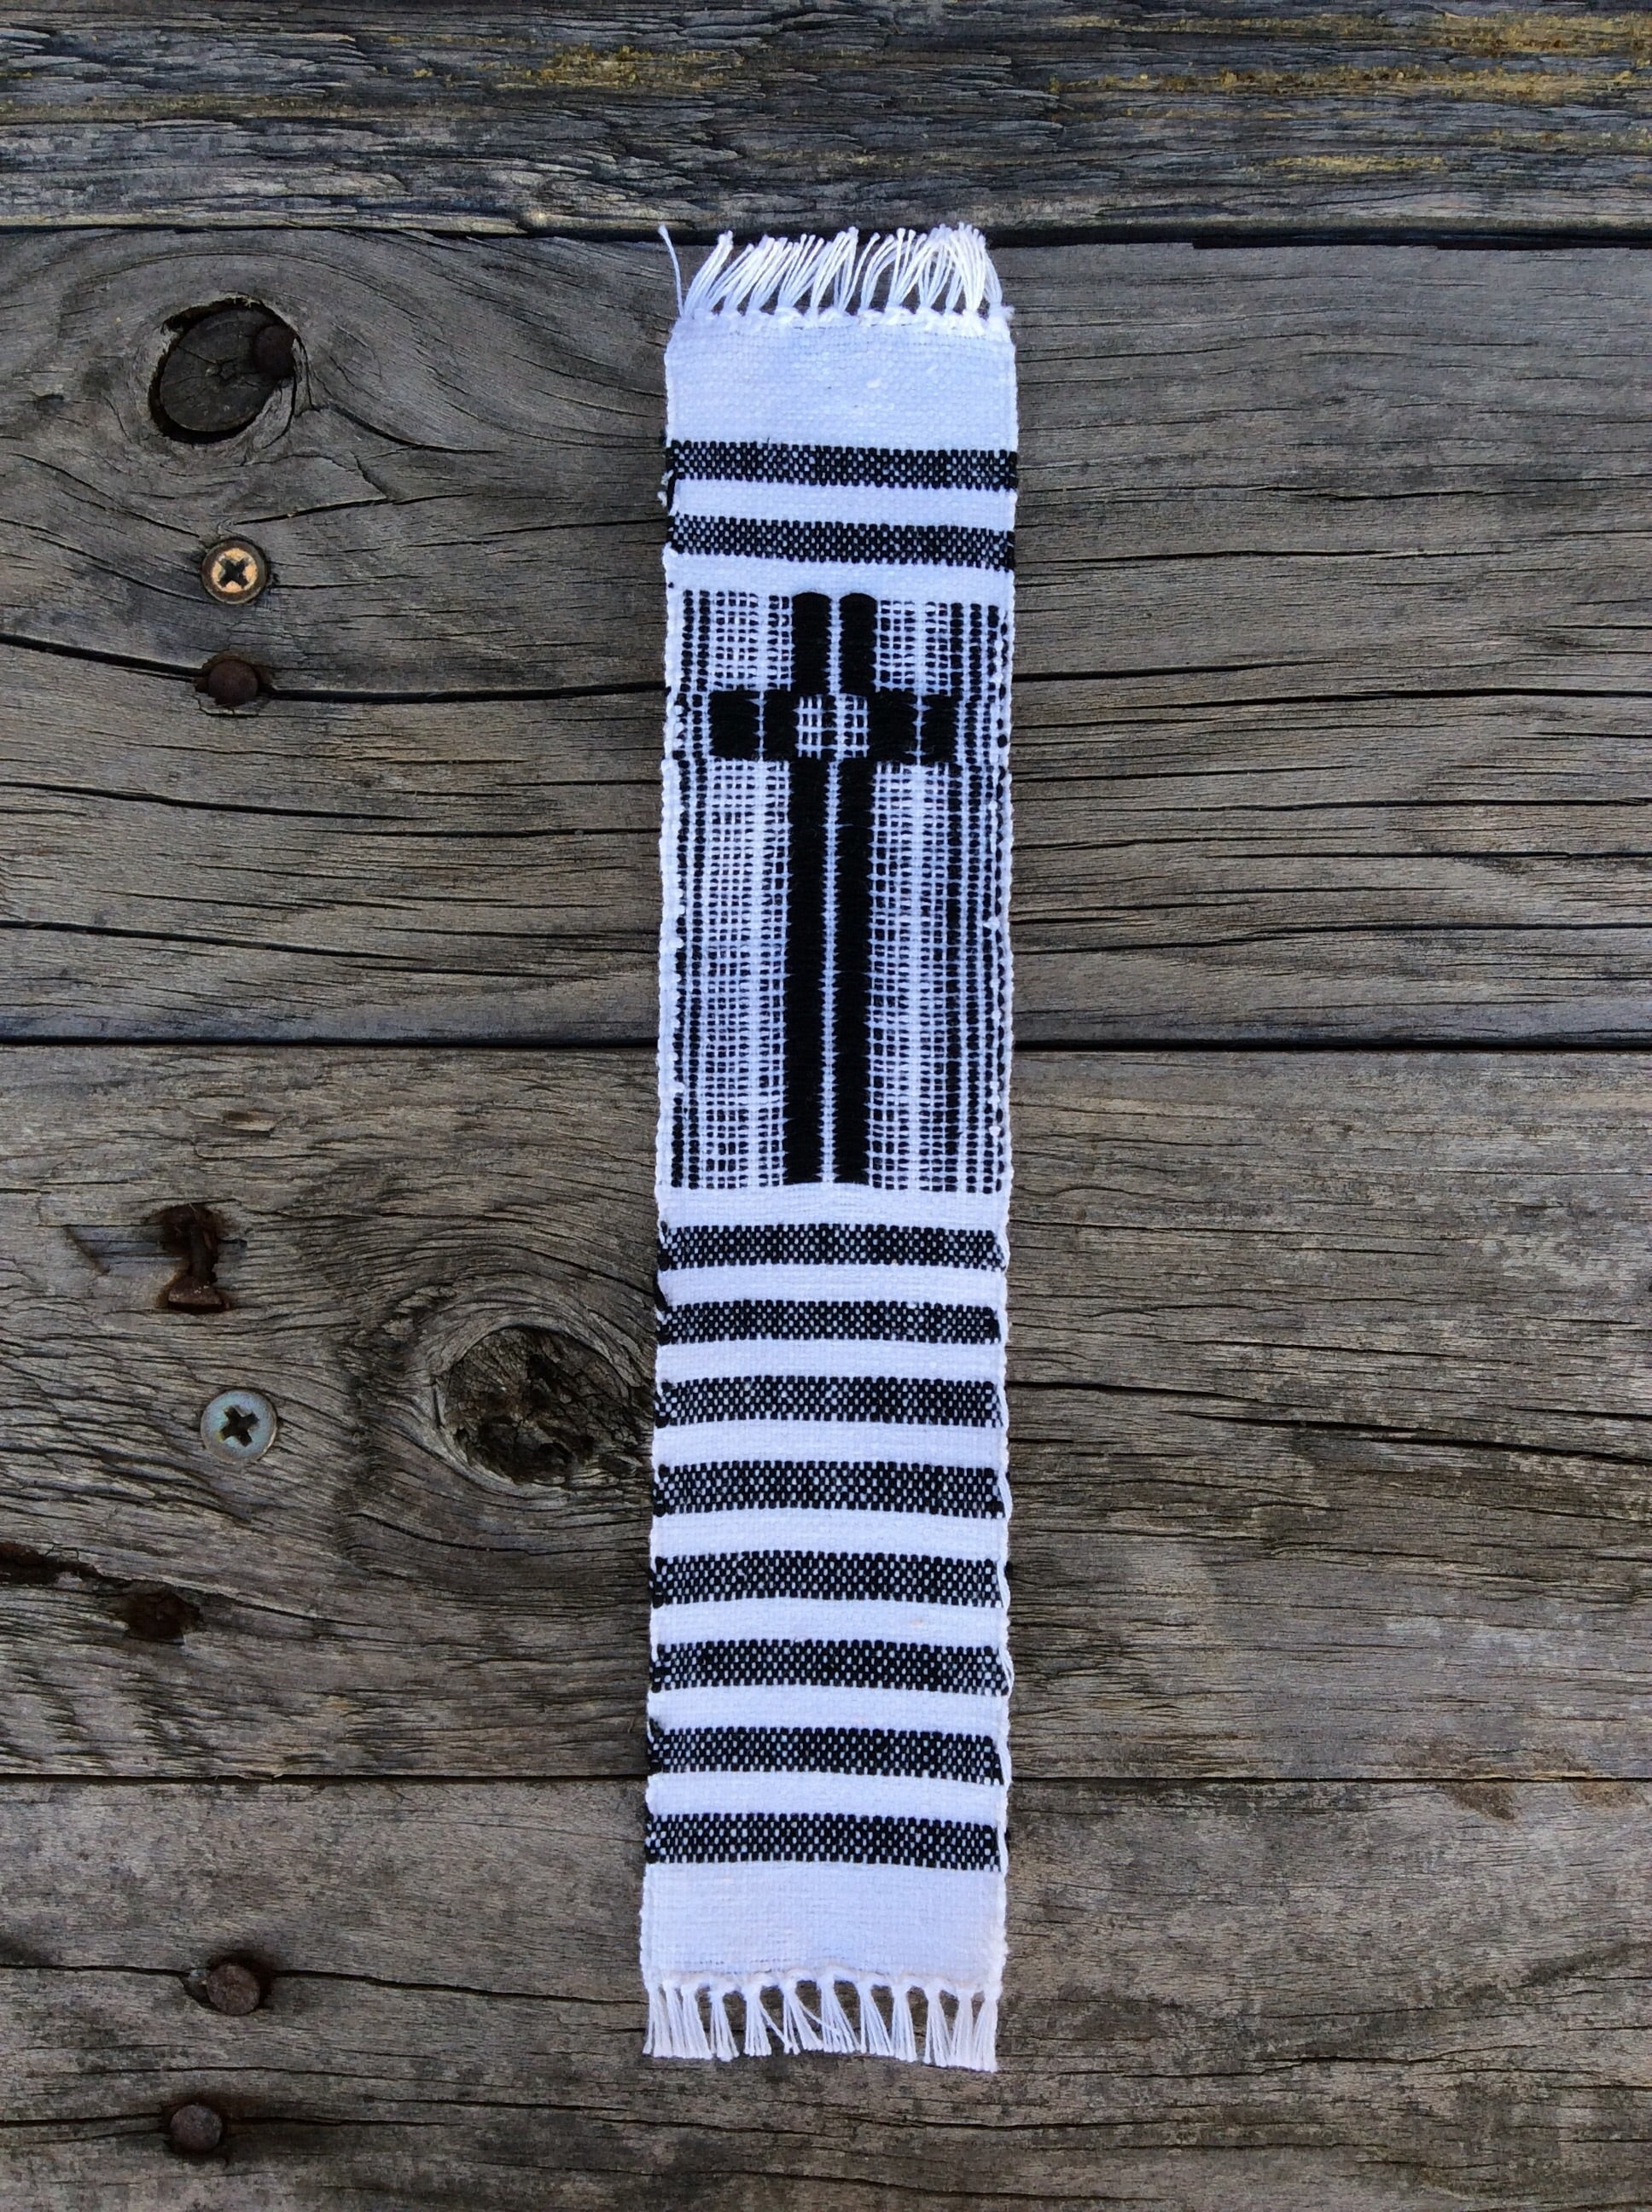 Fair Trade Ethical Woven Cross Bookmark